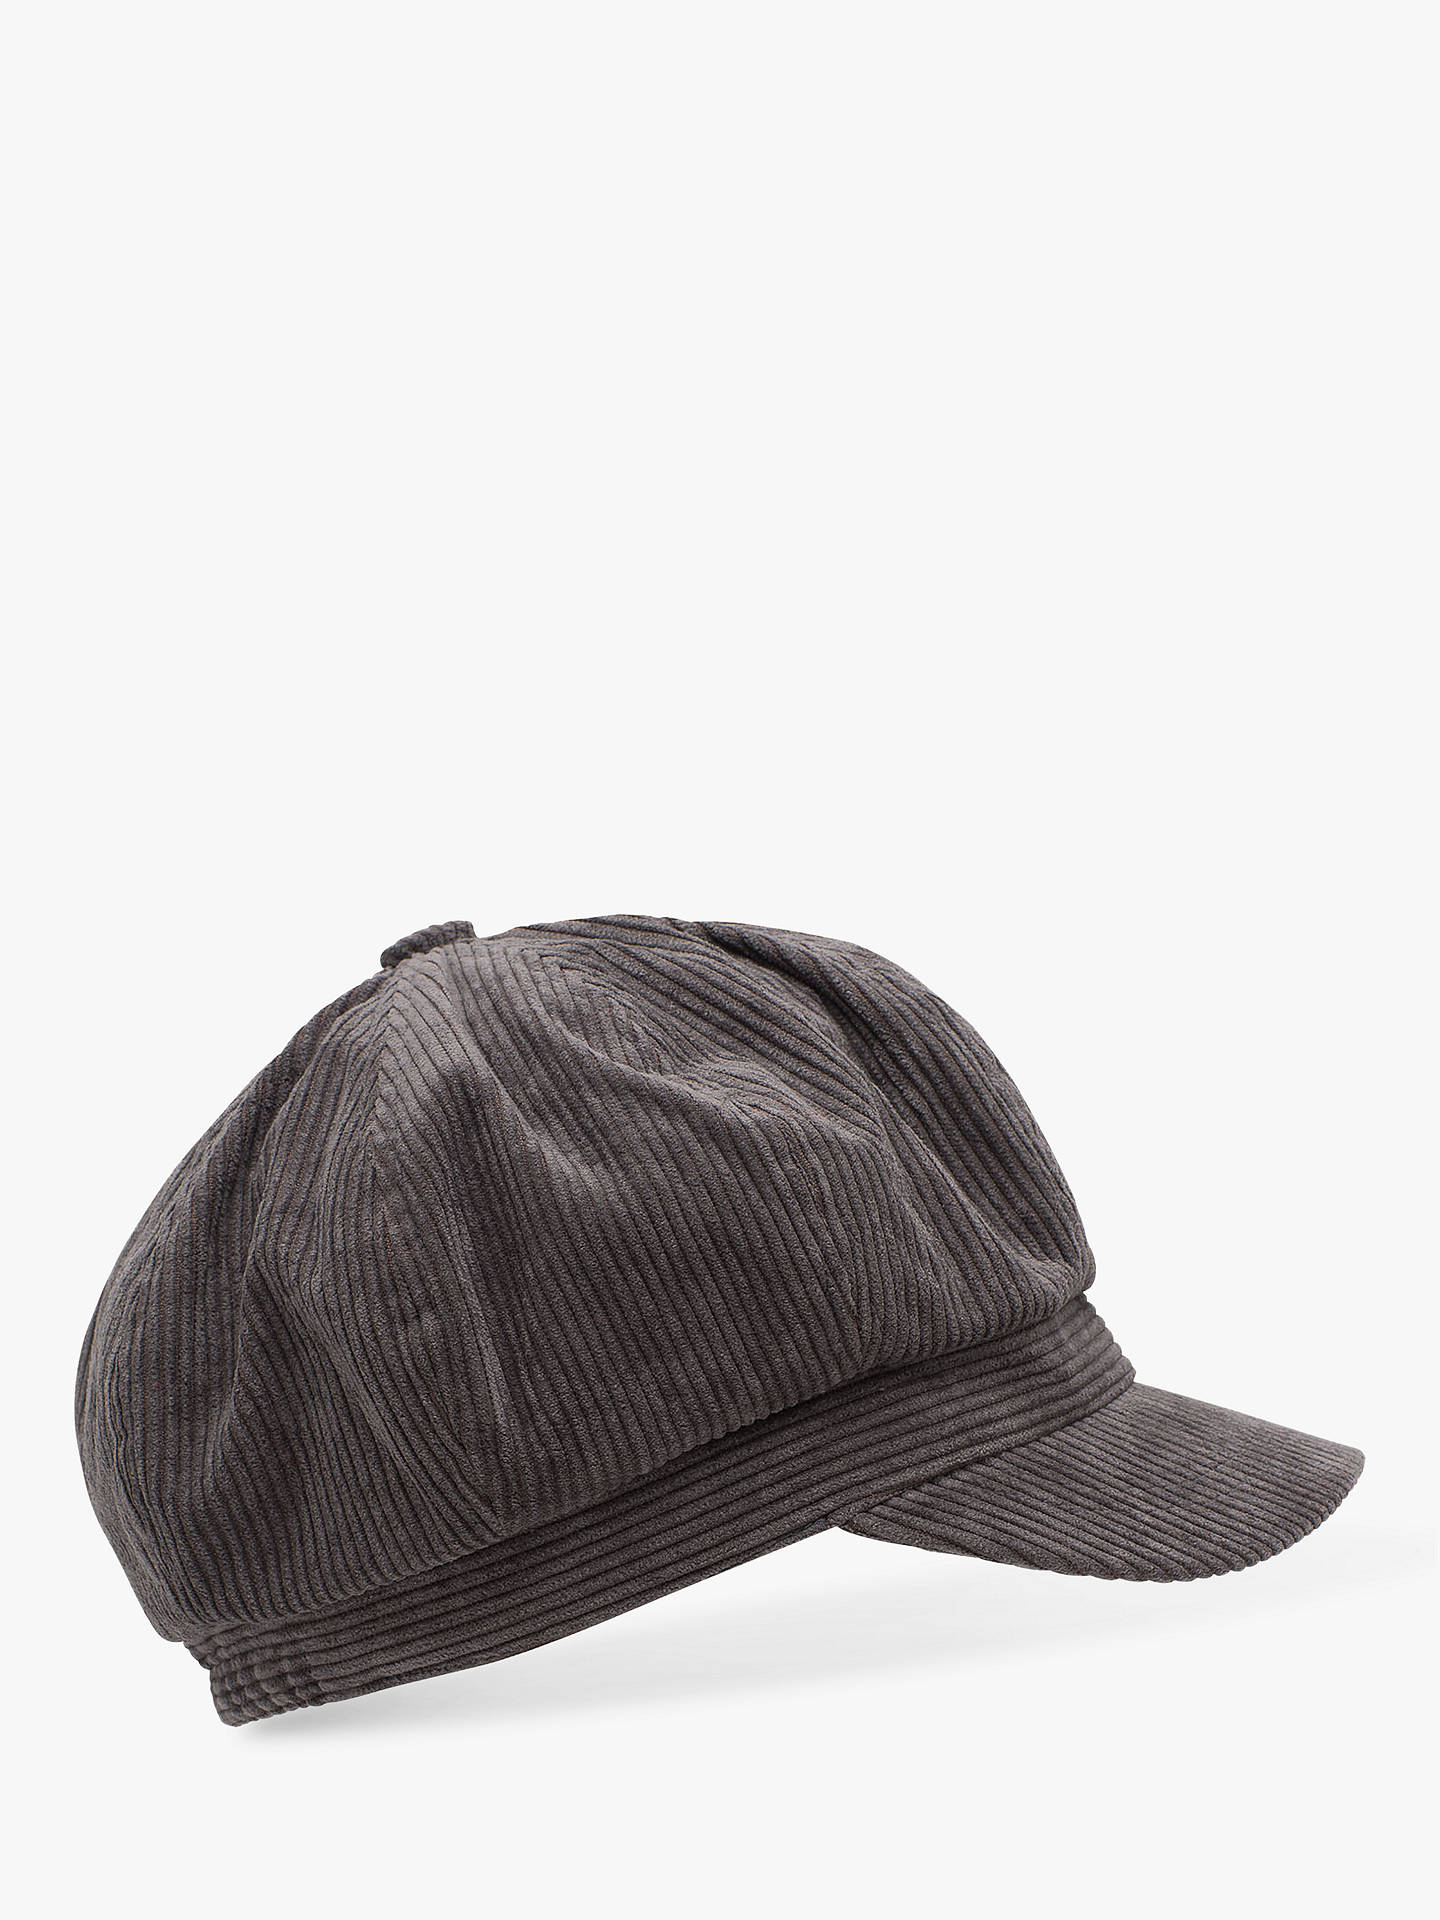 BuyFrench Connection Corduroy Baker Boy Hat 7864cf3ad965